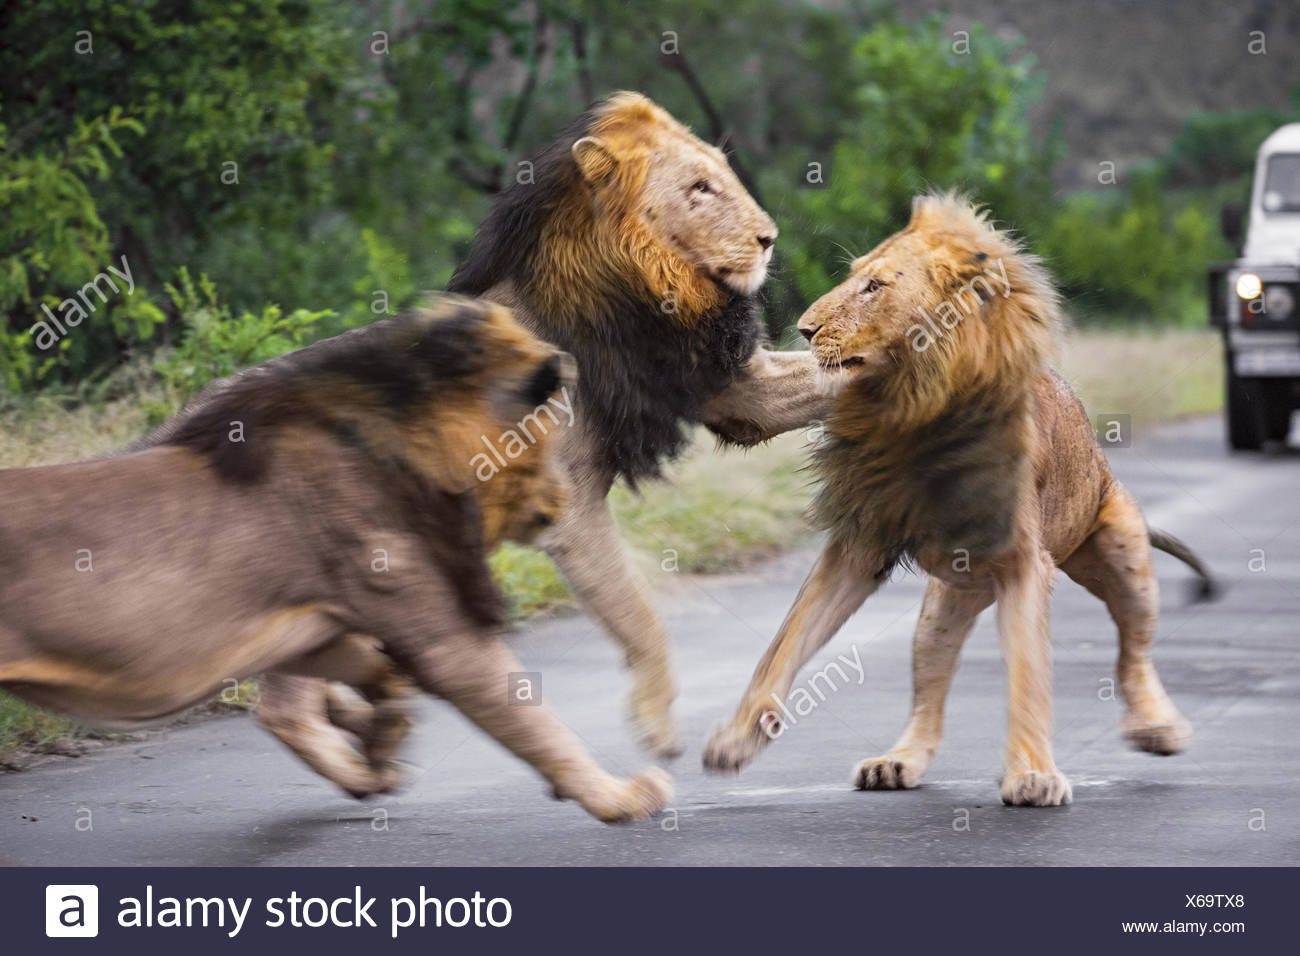 three lions have a skirmish on a paved road. - Stock Image